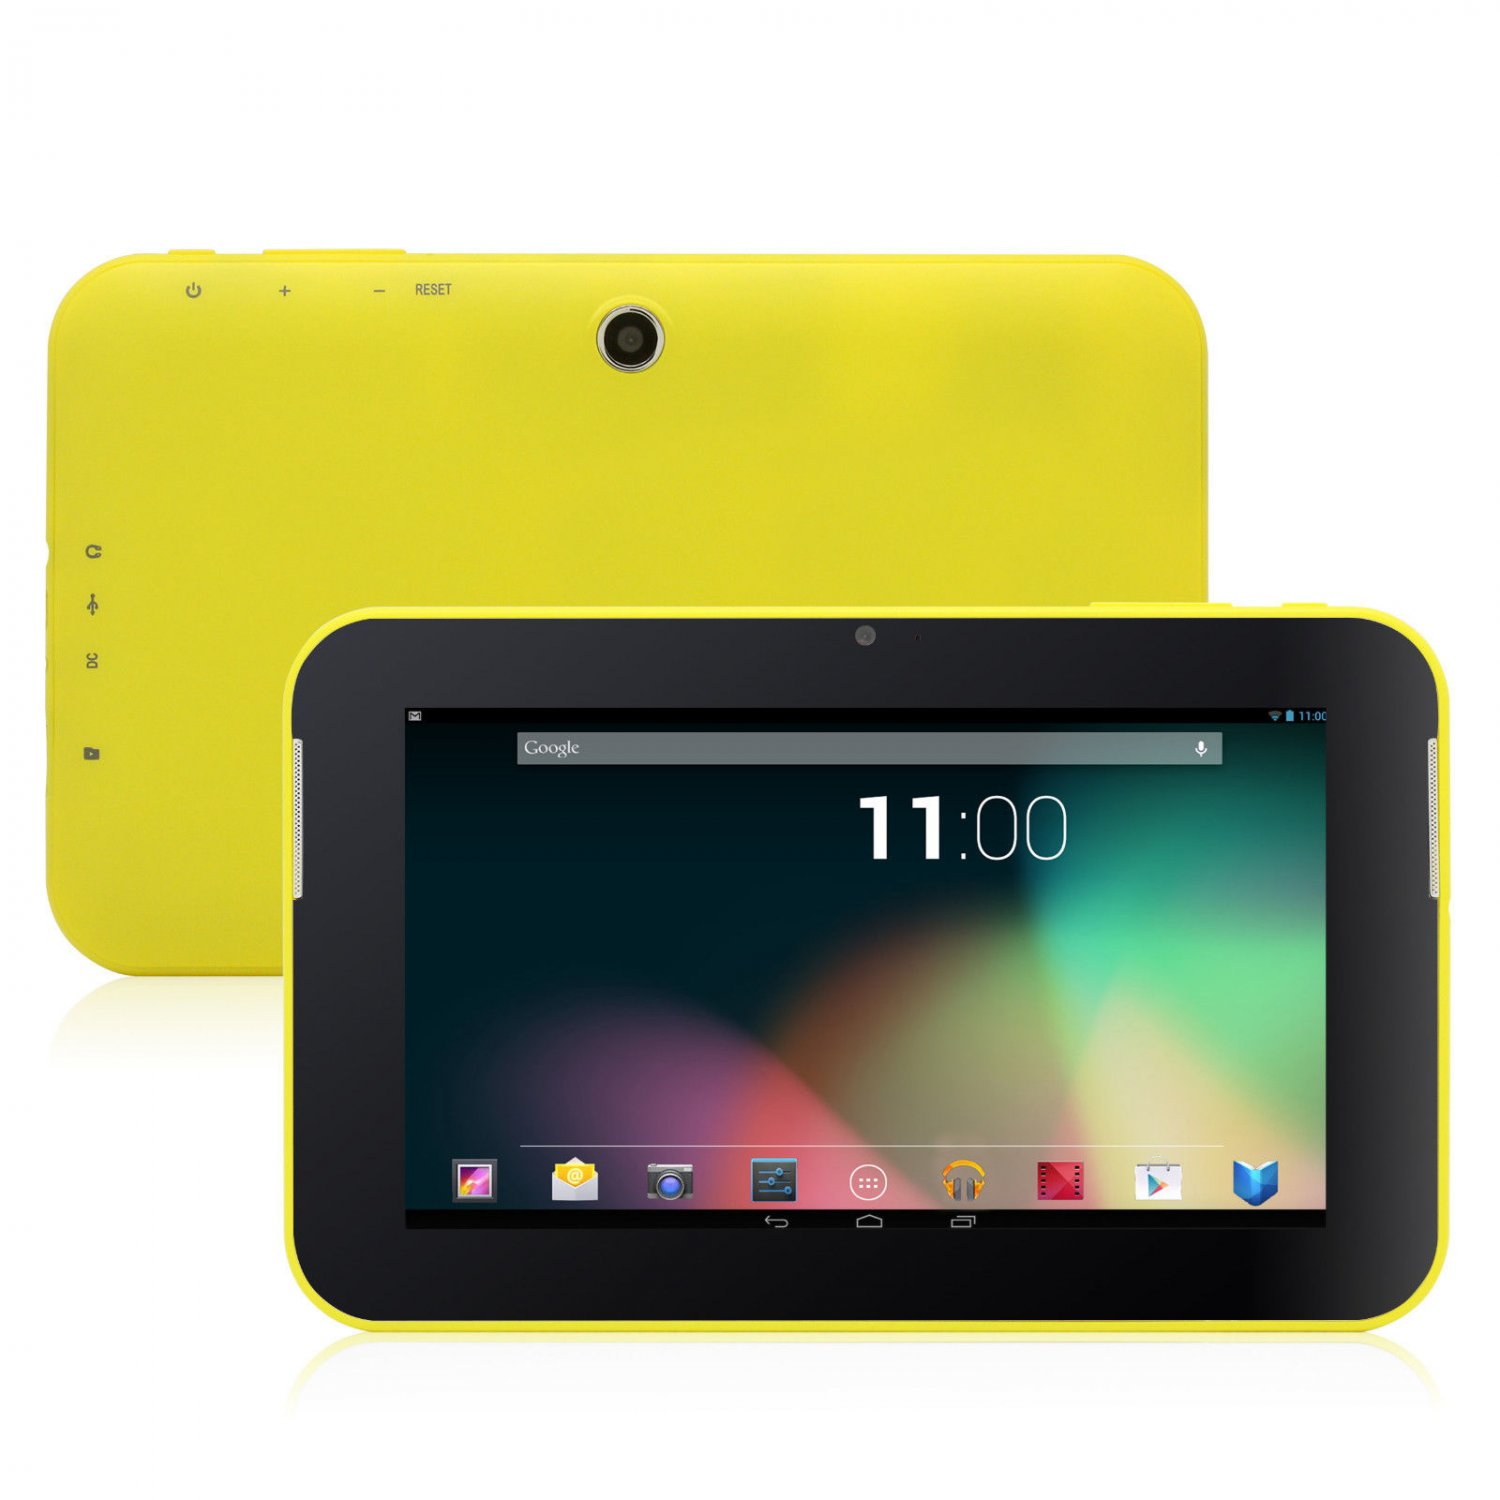 Brand New Google Android 4.2 Tablet PC Cortex A9 - Yellow